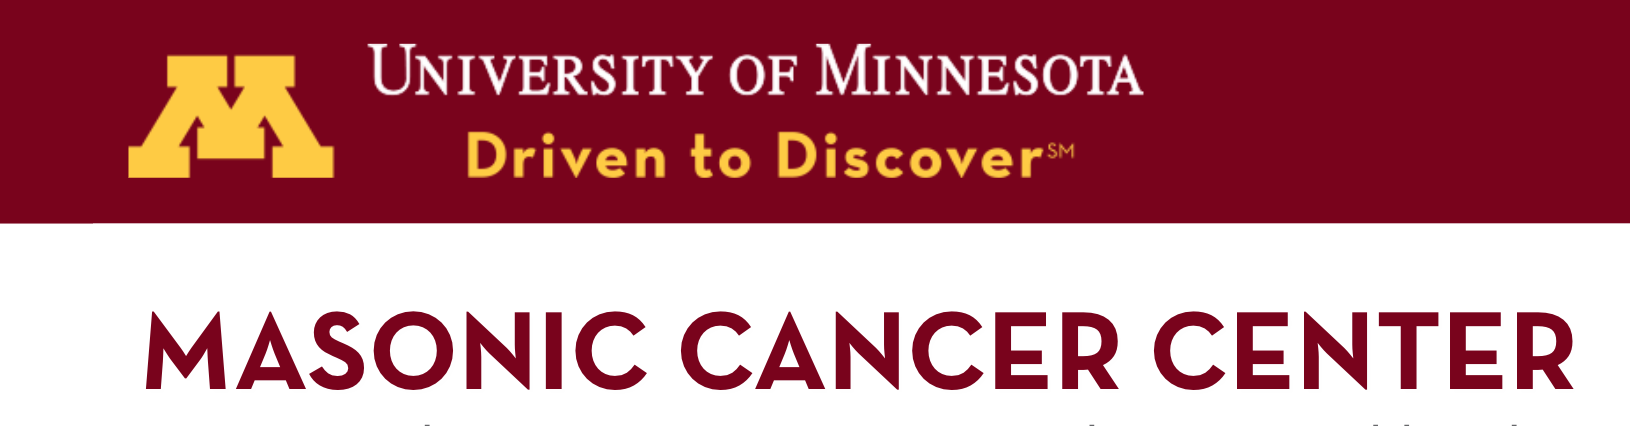 UMN Cancer Center.png